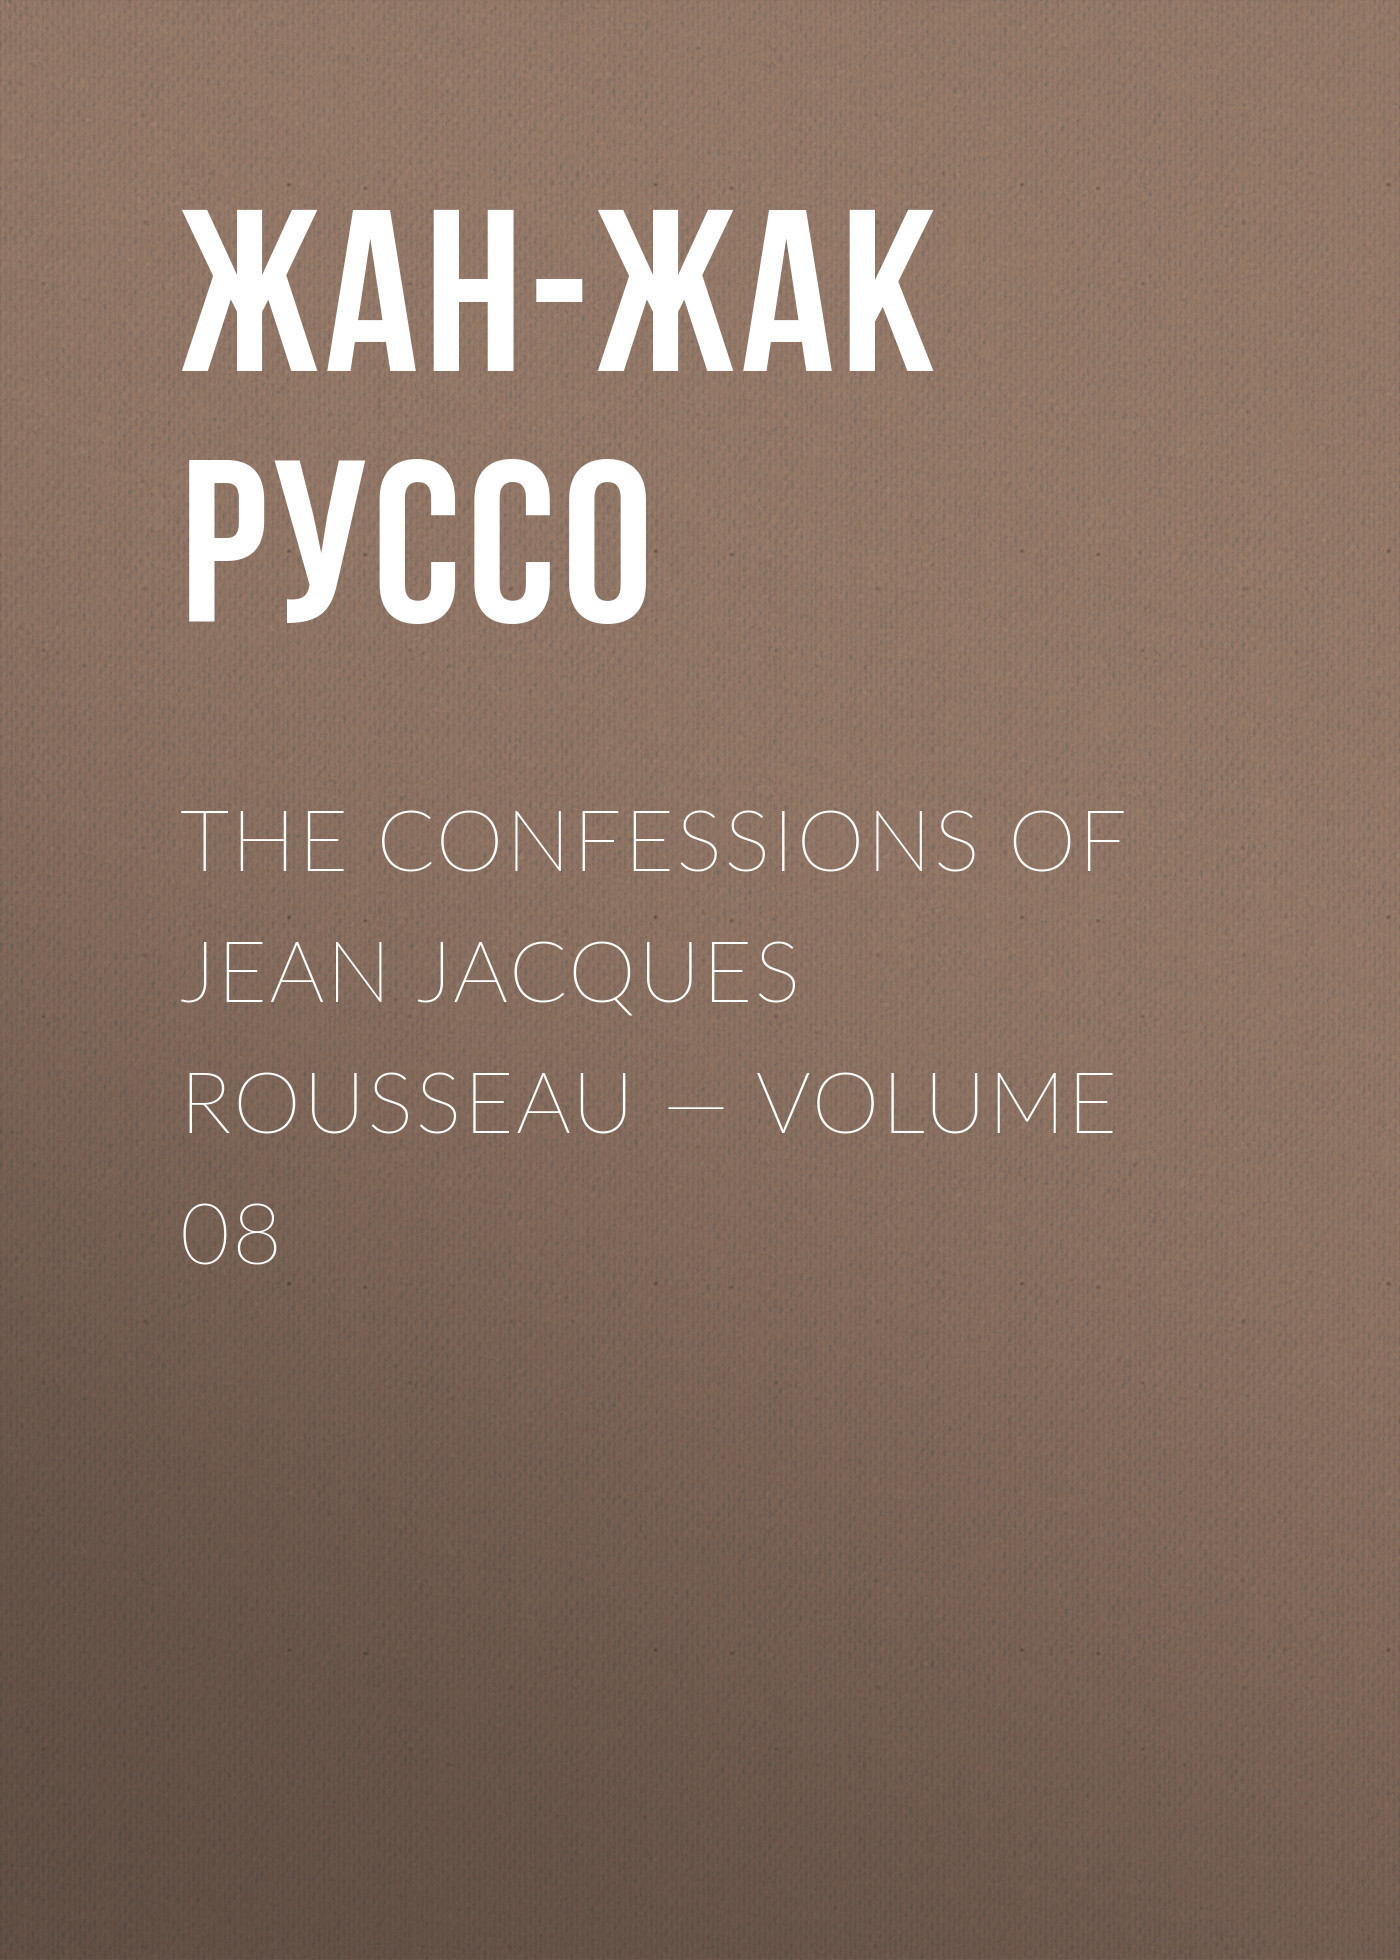 Жан-Жак Руссо The Confessions of Jean Jacques Rousseau — Volume 08 jean jacques rousseau memoires t 3